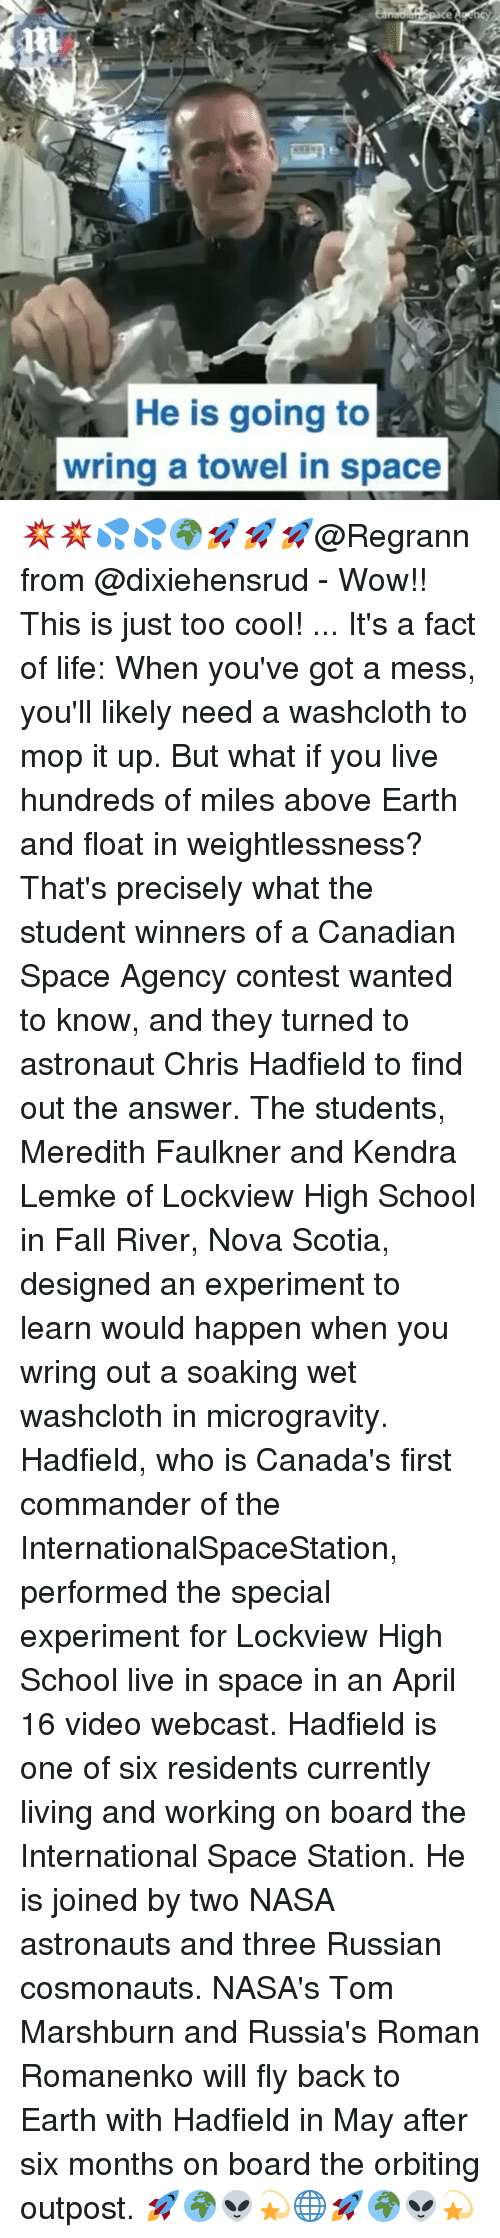 Chris Hadfield, Memes, and Canadian: He is going to  -A  wring a towel in space 💥💥💦💦🌍🚀🚀🚀@Regrann from @dixiehensrud - Wow!! This is just too cool! ... It's a fact of life: When you've got a mess, you'll likely need a washcloth to mop it up. But what if you live hundreds of miles above Earth and float in weightlessness? That's precisely what the student winners of a Canadian Space Agency contest wanted to know, and they turned to astronaut Chris Hadfield to find out the answer. The students, Meredith Faulkner and Kendra Lemke of Lockview High School in Fall River, Nova Scotia, designed an experiment to learn would happen when you wring out a soaking wet washcloth in microgravity. Hadfield, who is Canada's first commander of the InternationalSpaceStation, performed the special experiment for Lockview High School live in space in an April 16 video webcast. Hadfield is one of six residents currently living and working on board the International Space Station. He is joined by two NASA astronauts and three Russian cosmonauts. NASA's Tom Marshburn and Russia's Roman Romanenko will fly back to Earth with Hadfield in May after six months on board the orbiting outpost. 🚀🌍👽💫🌐🚀🌍👽💫